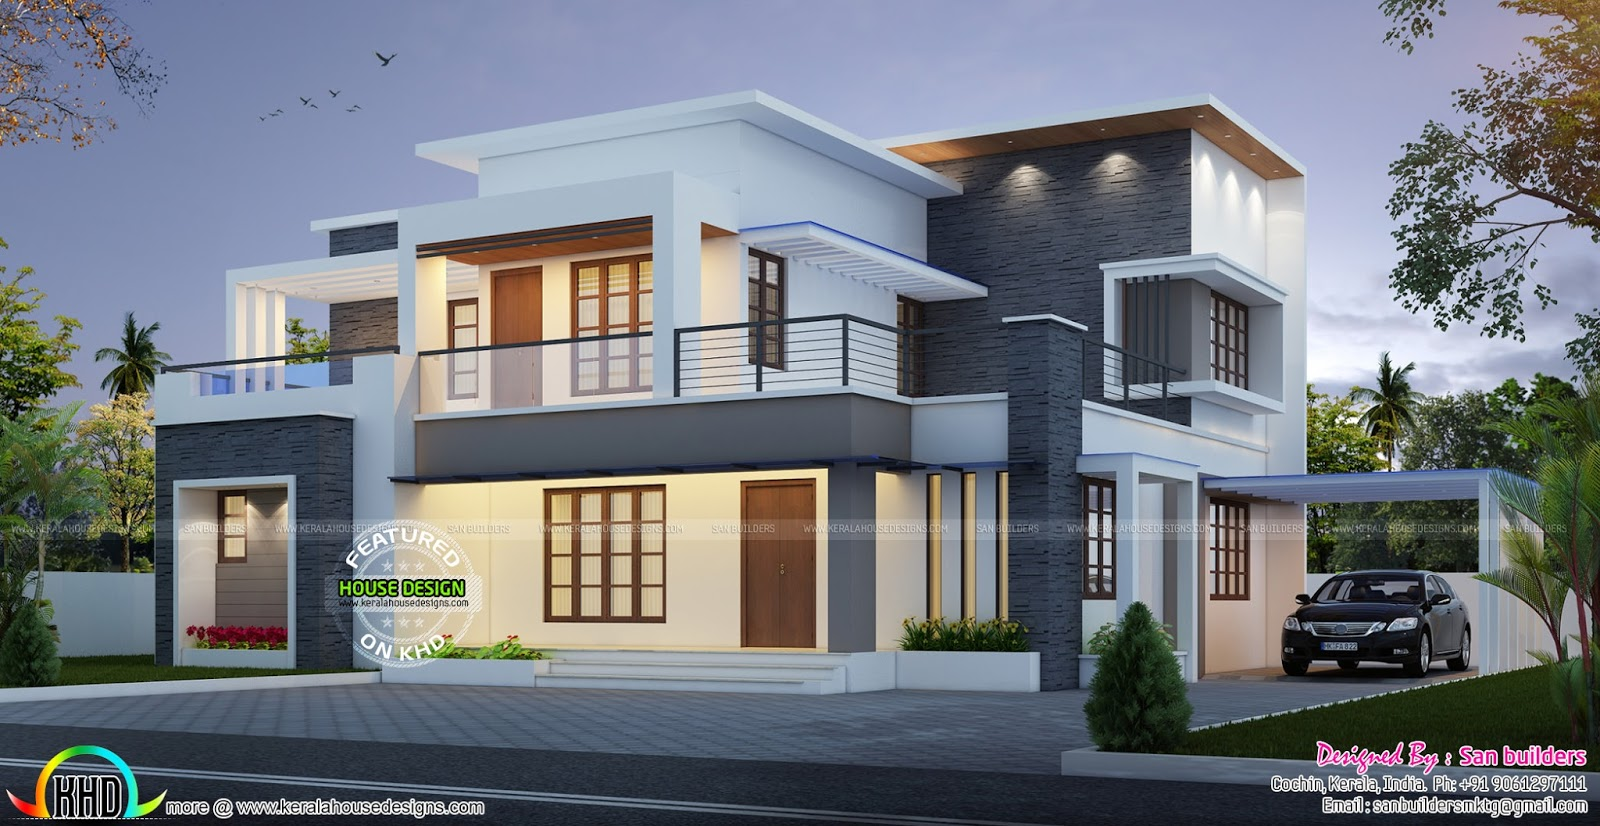 House plan and elevation by san builders kerala home for Home plan elevation